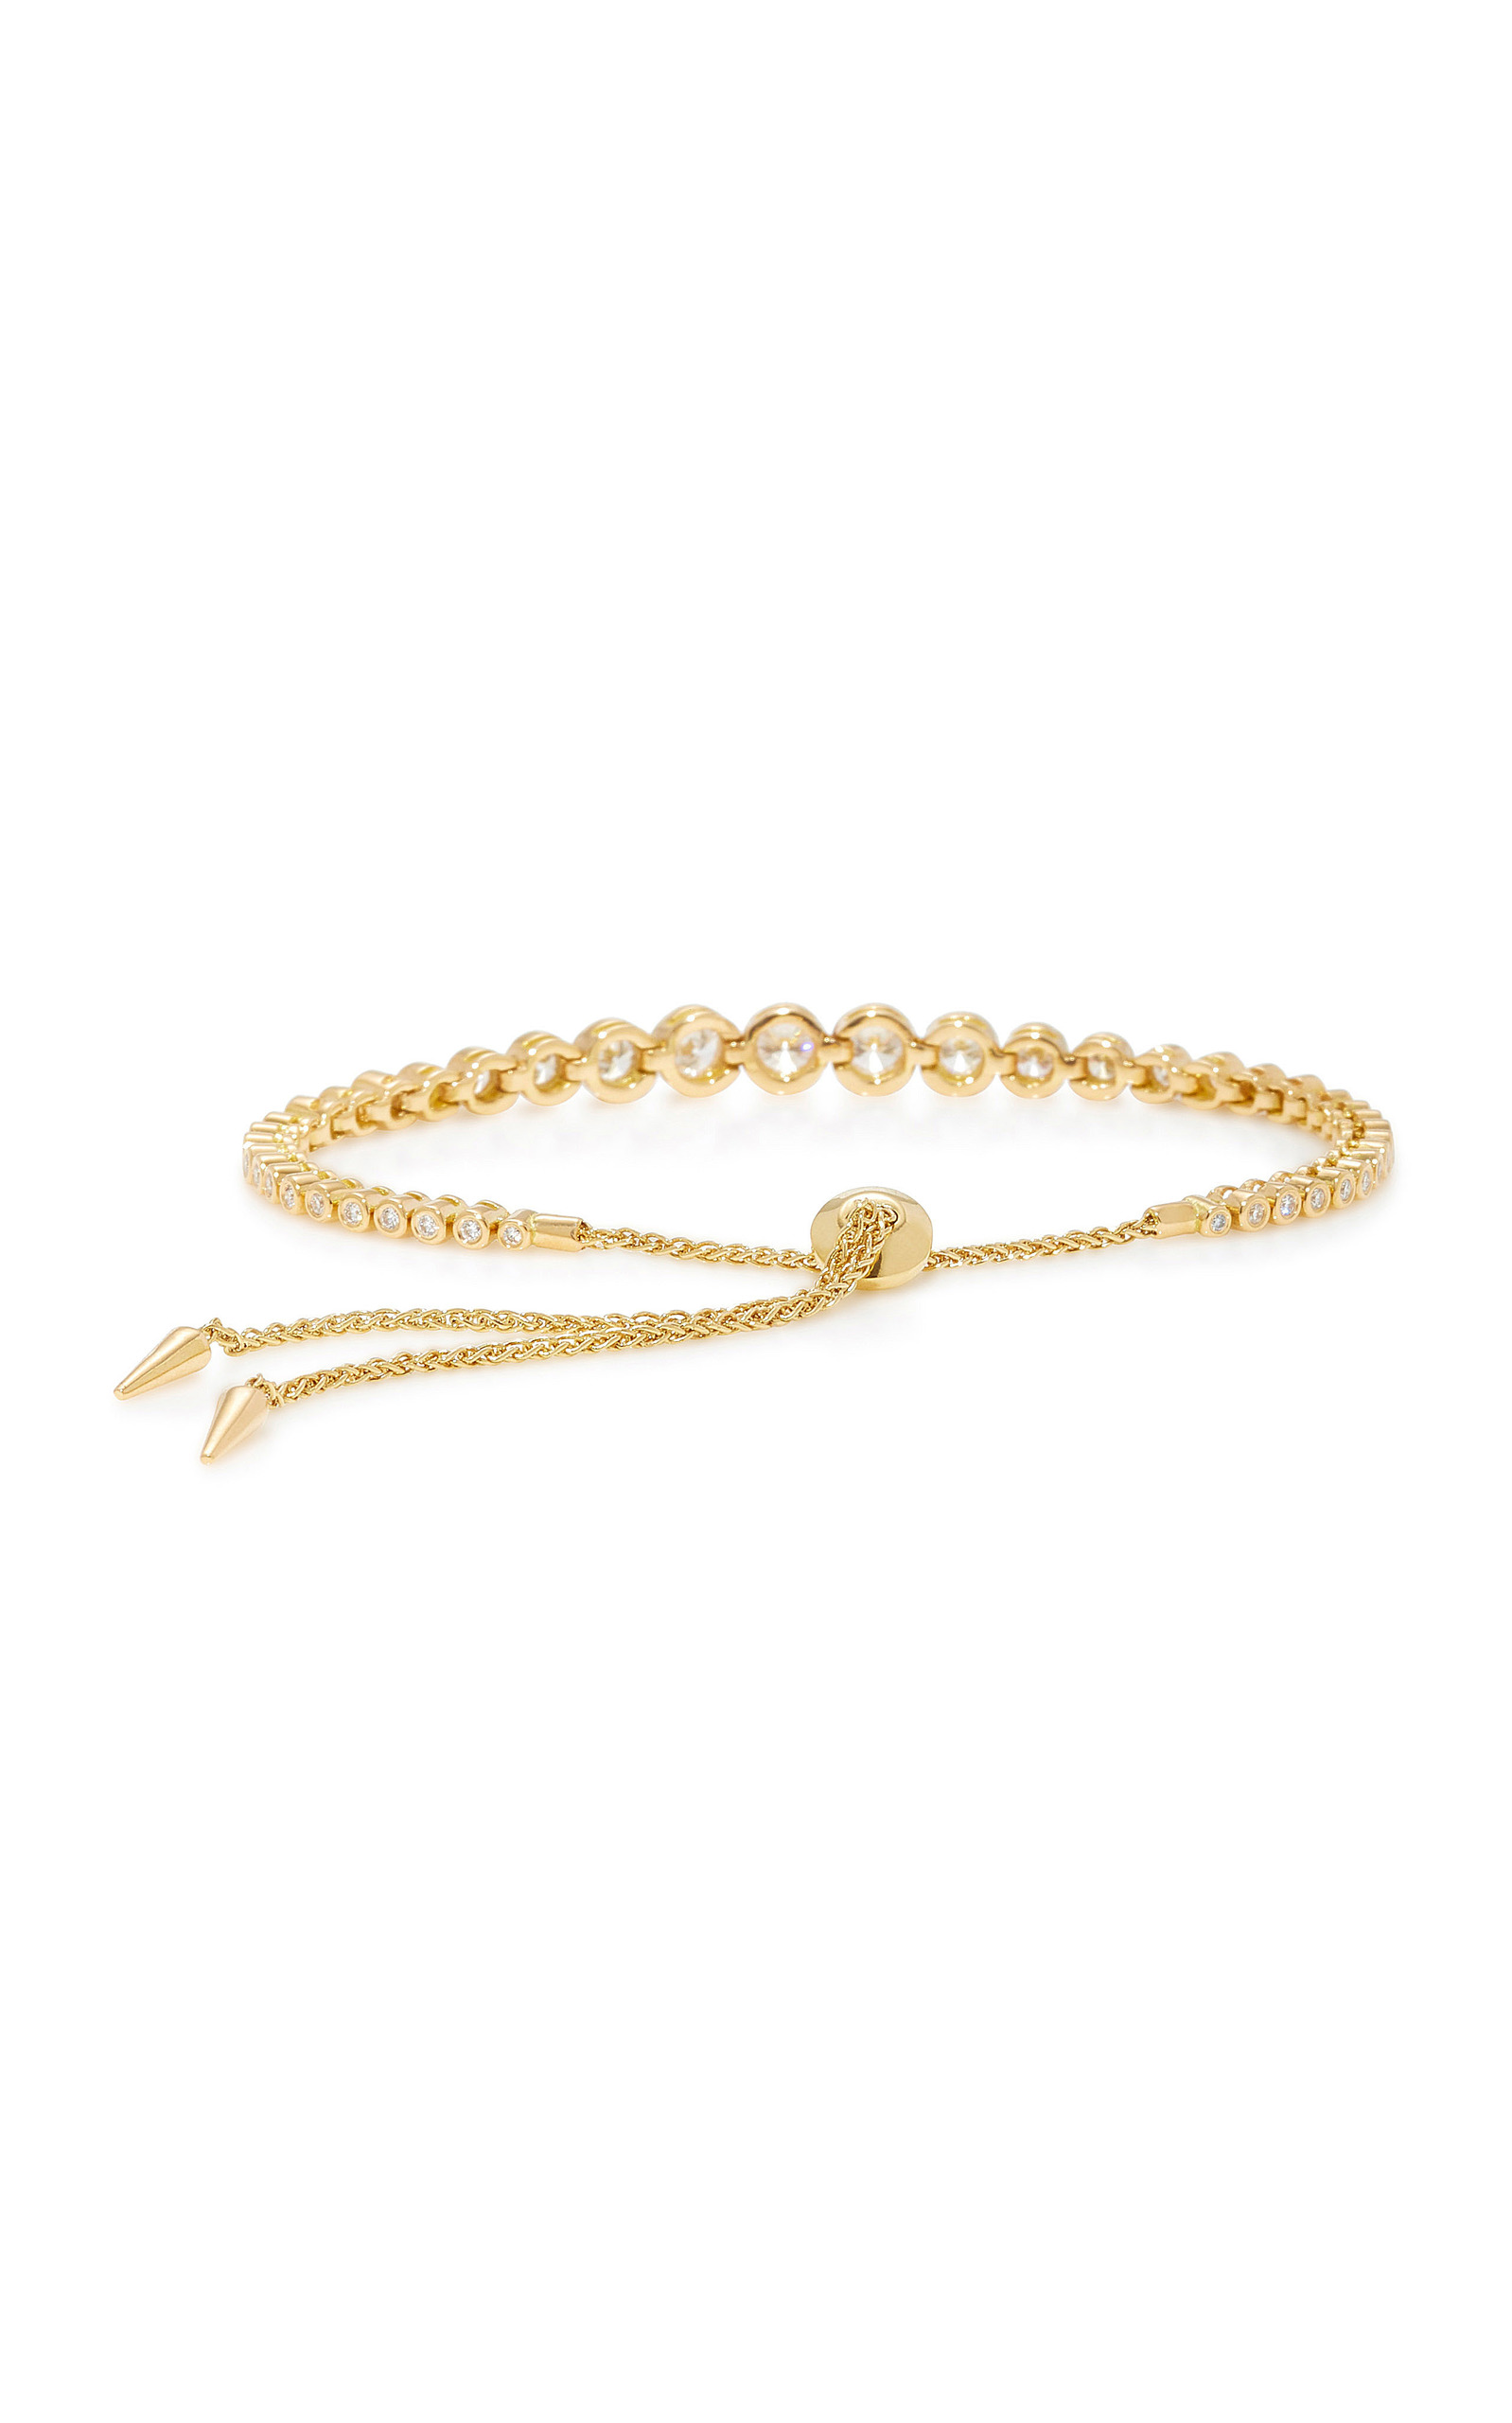 jemma slider gold bracelet operandi by moda wynne loading large